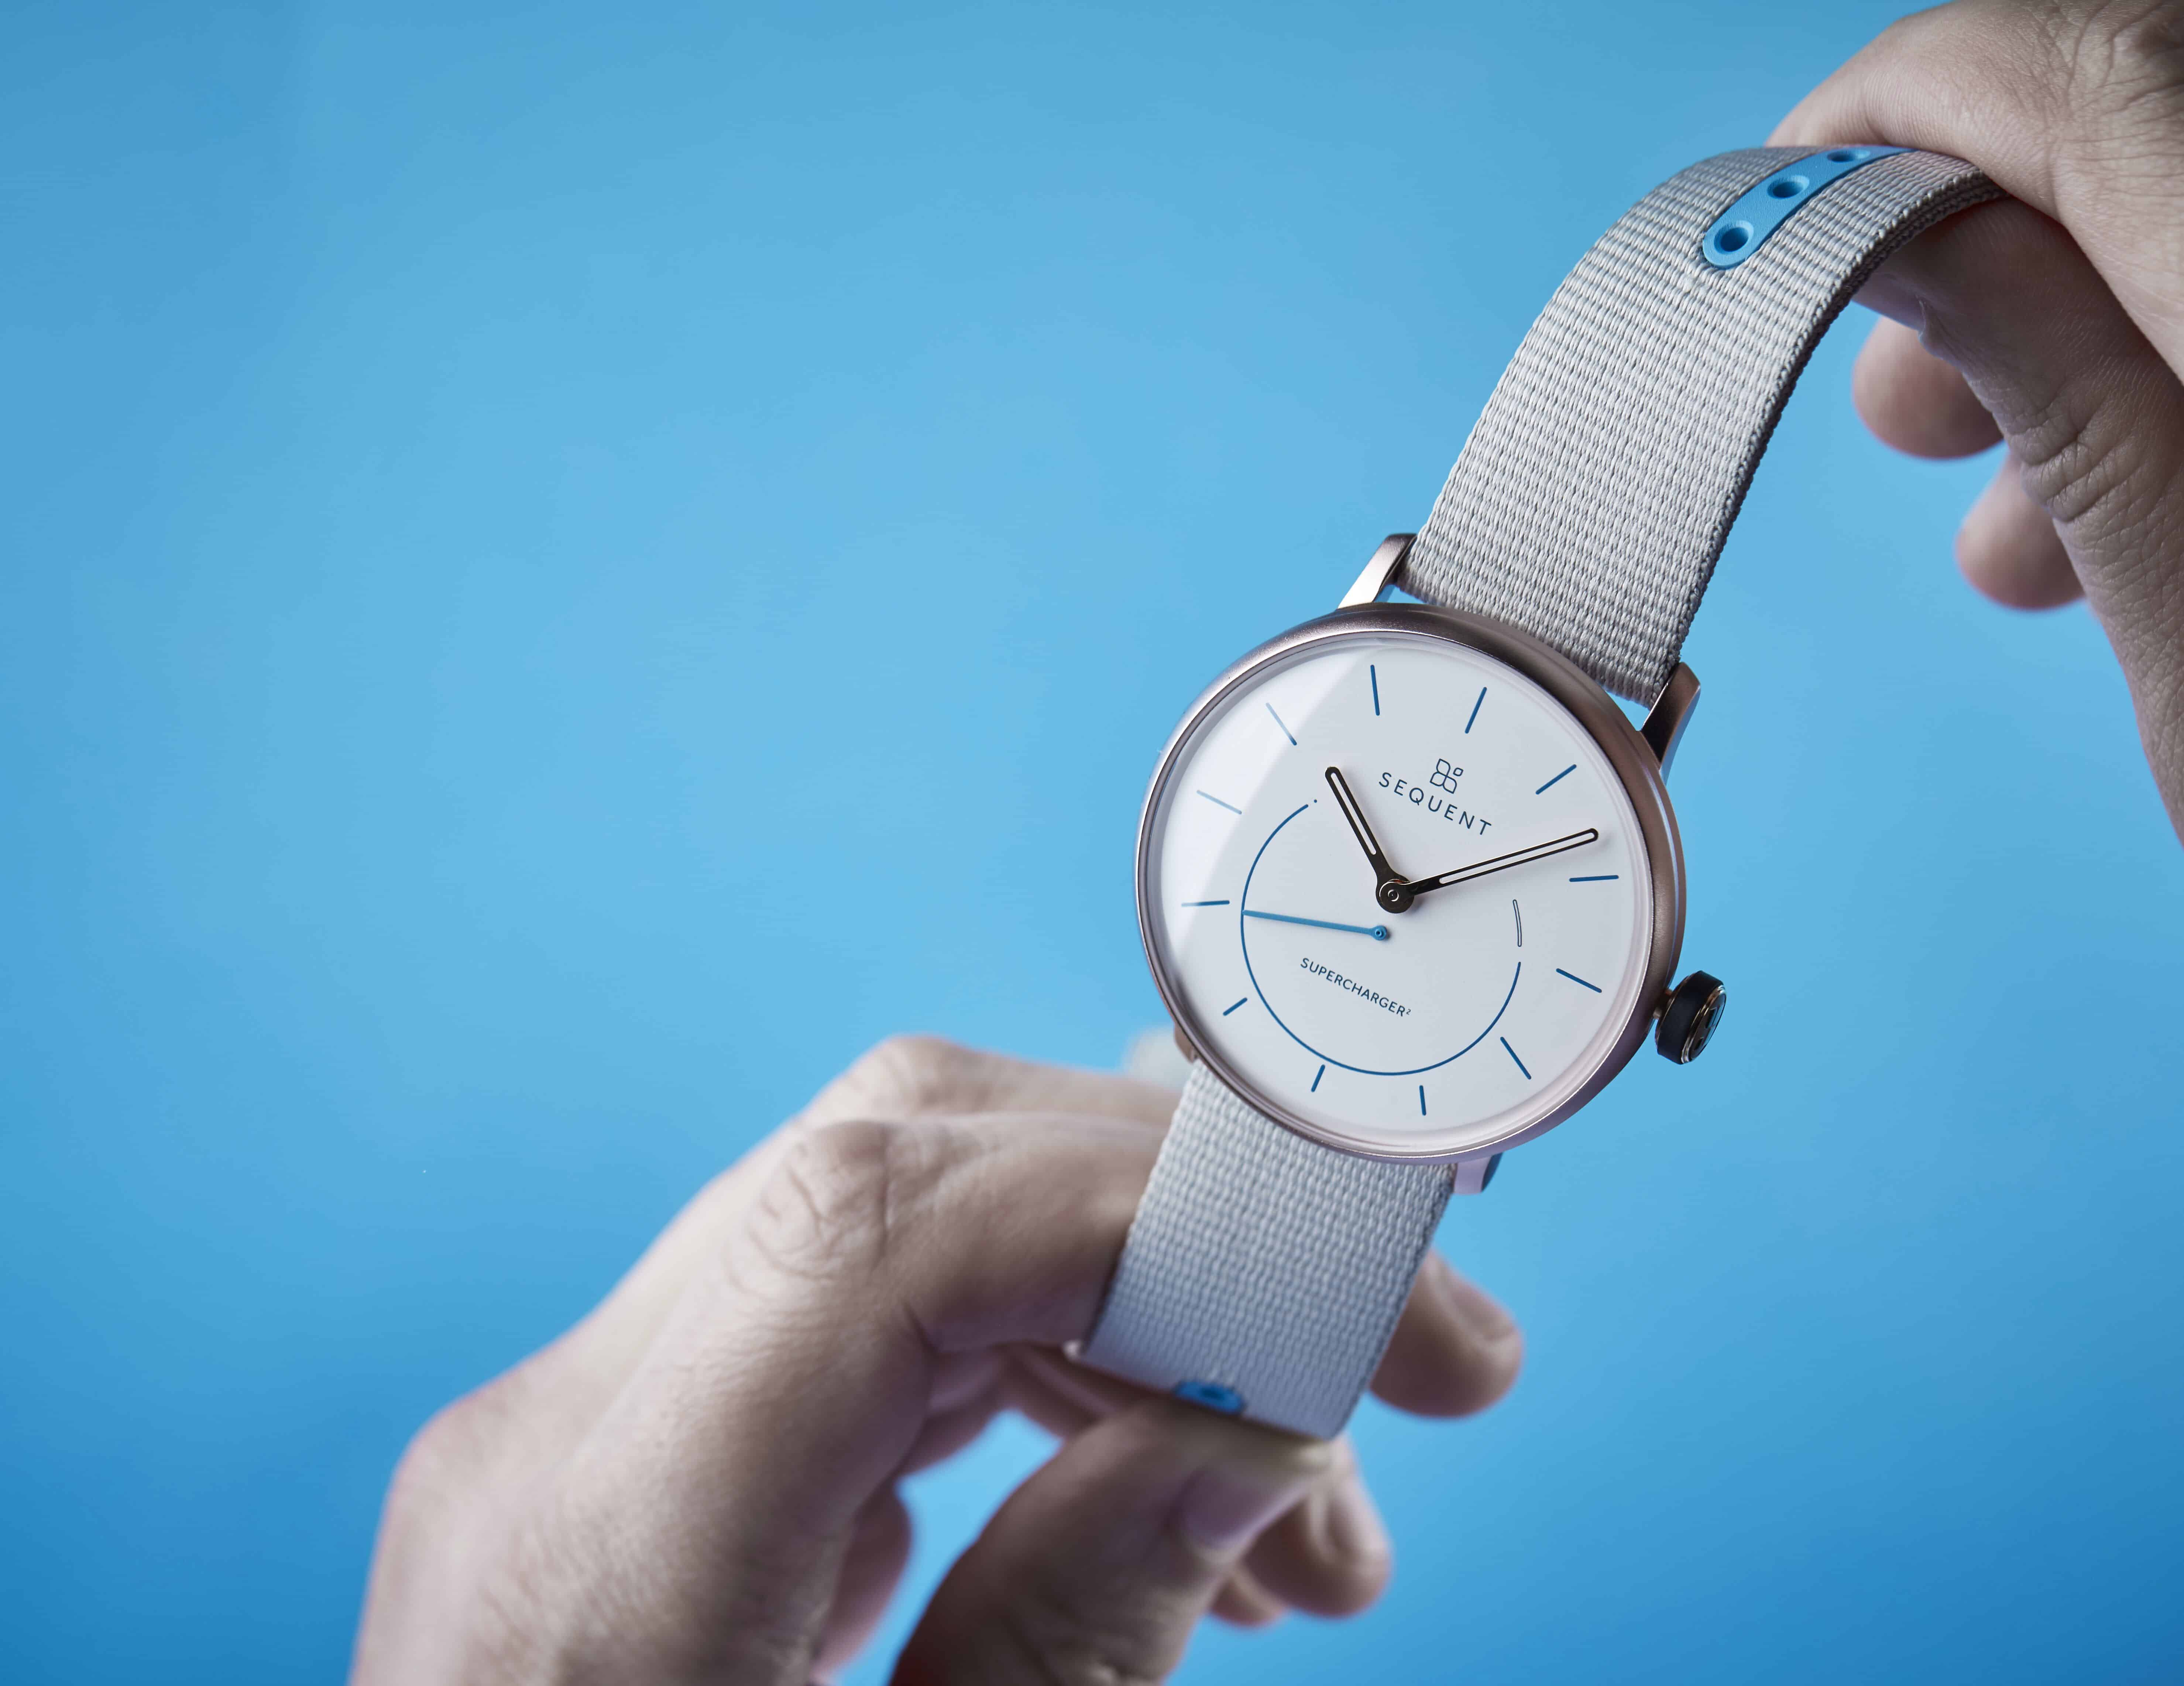 Sequent SuperCharger2 smartwatch gets powered by human body movements